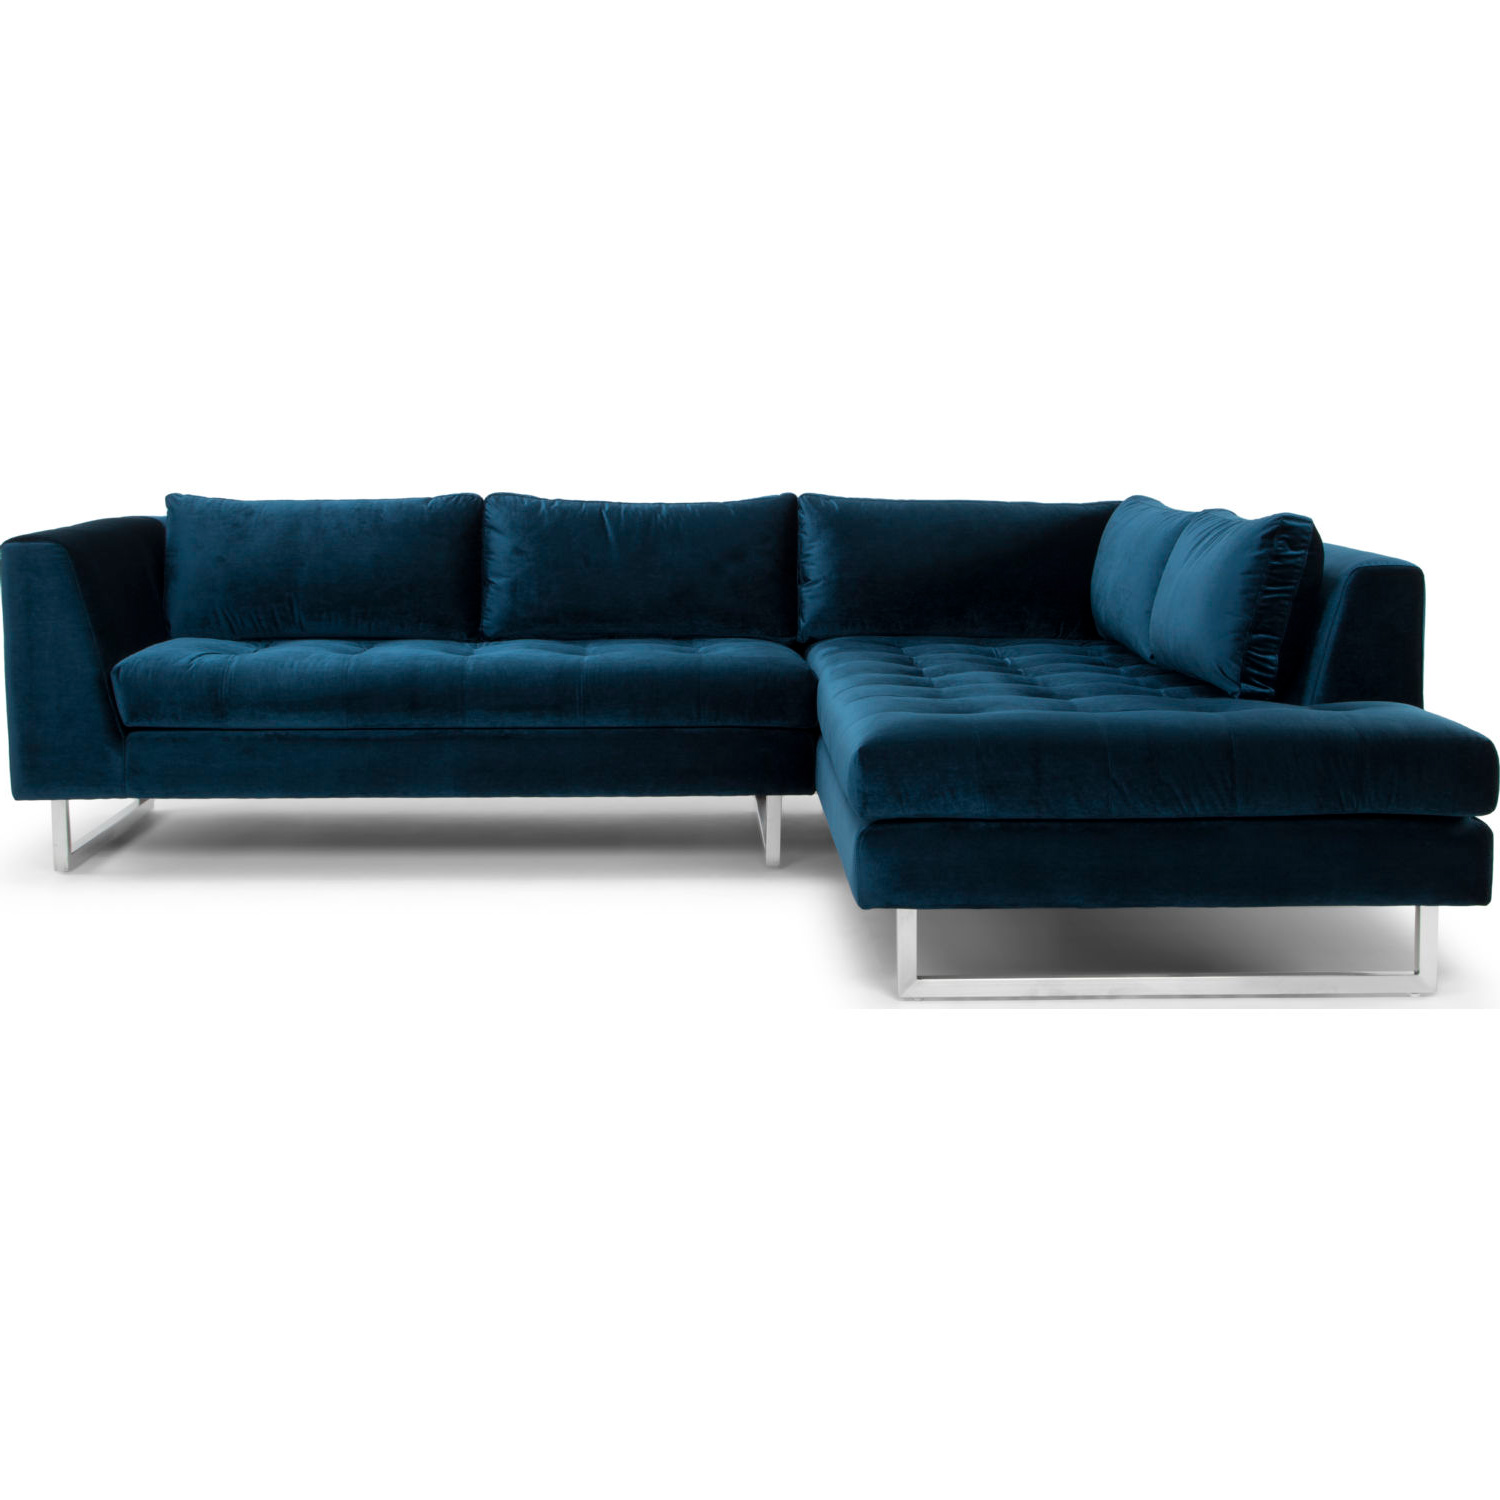 Enjoyable Janis Sectional Sofa W Right Hand Chaise In Midnight Blue Fabric By Nuevo Modern Furniture Short Links Chair Design For Home Short Linksinfo